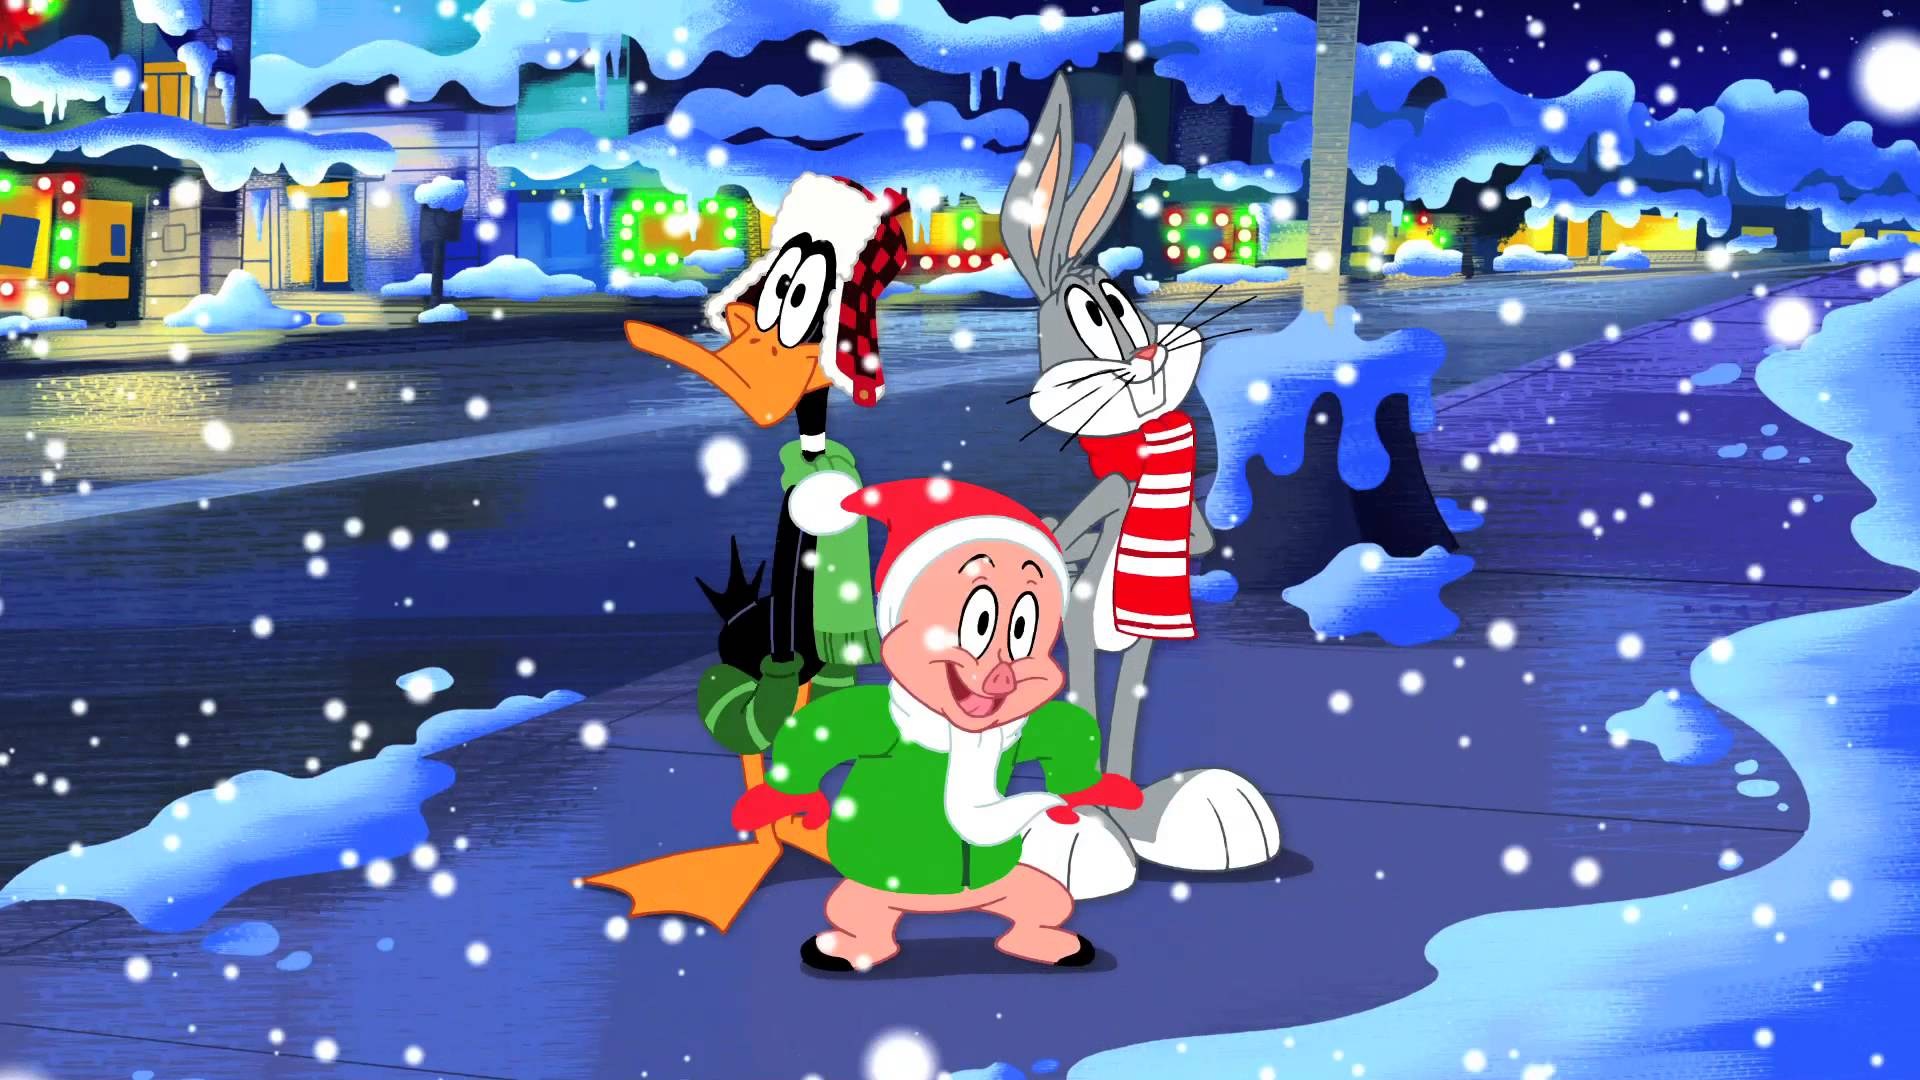 bugs daffy and porky sings christmasjpg - Porky Pig Sings Blue Christmas